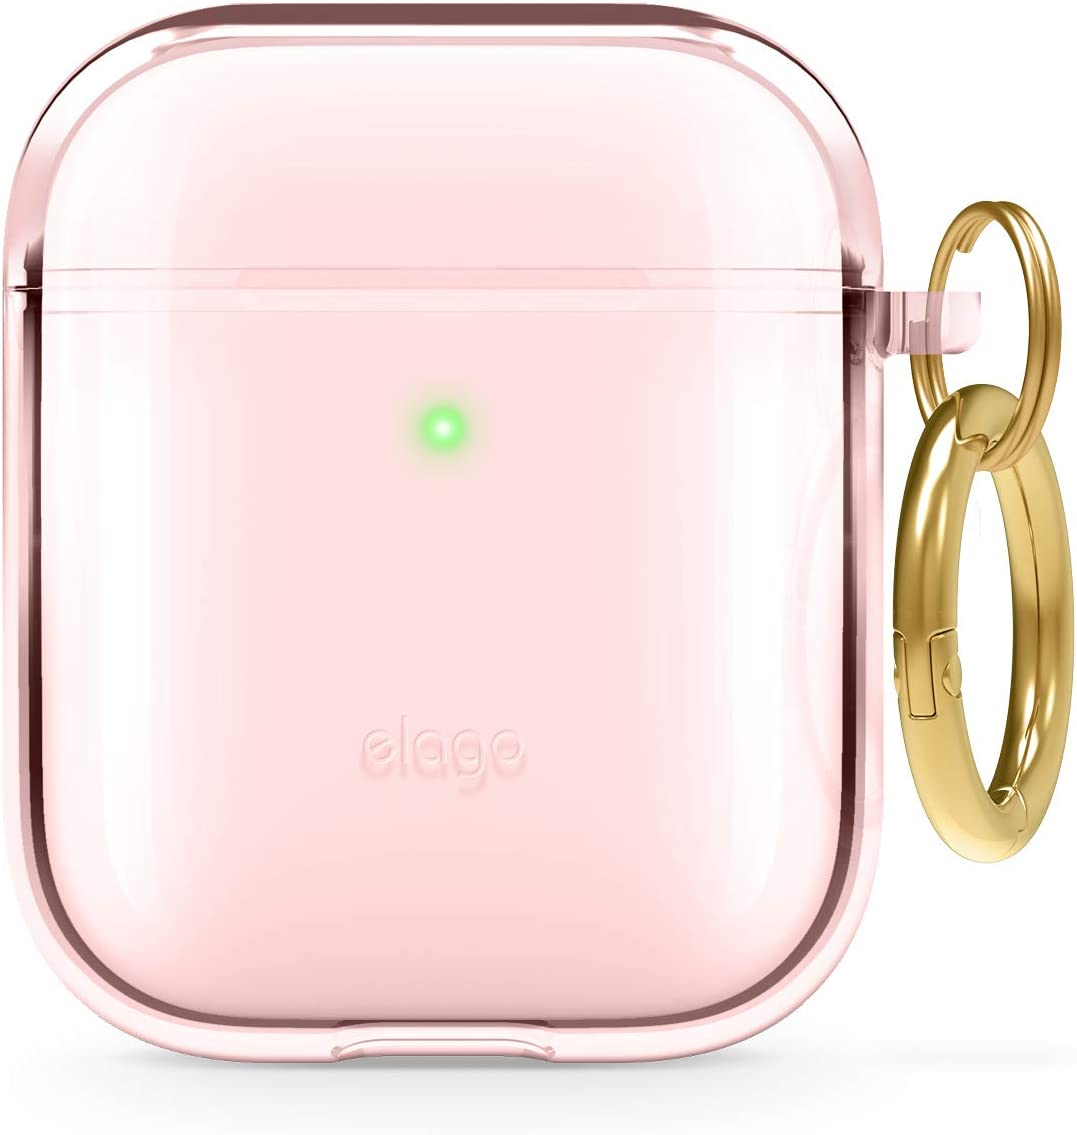 elago Clear Airpods Case with Keychain Designed for Apple Airpods 1 & 2 (Lovely Pink)